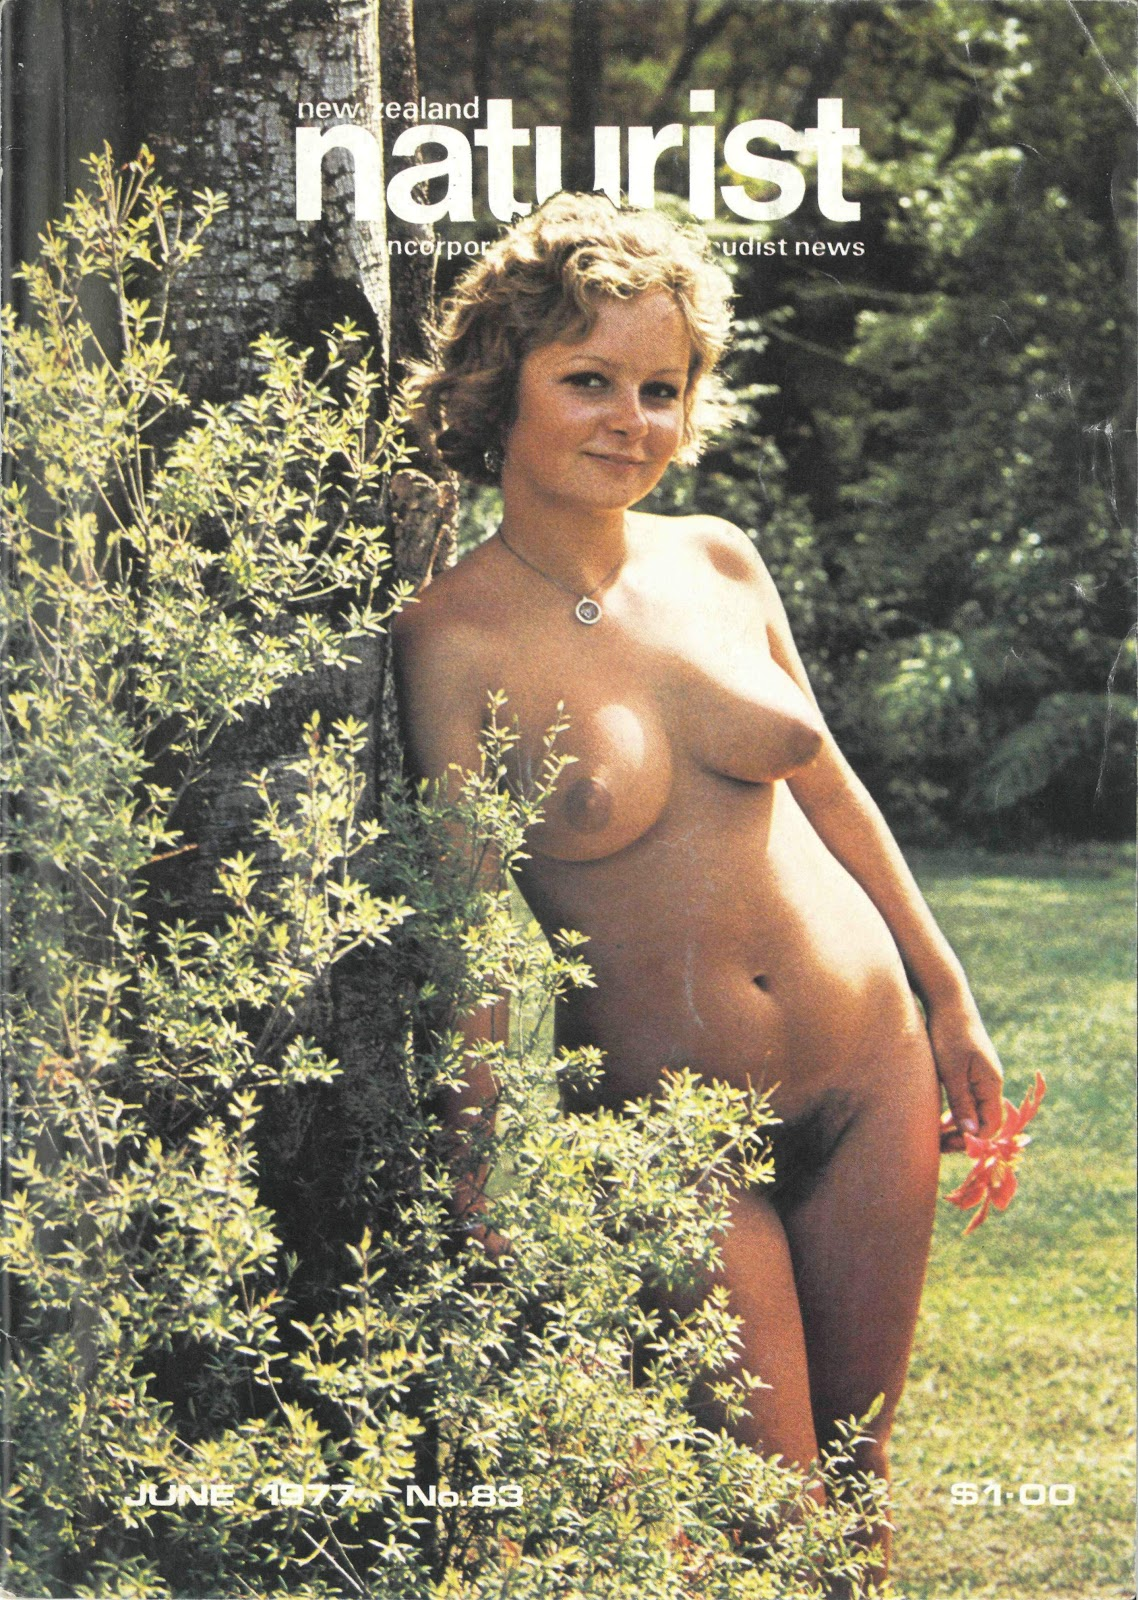 Sandie westgate naked wedding